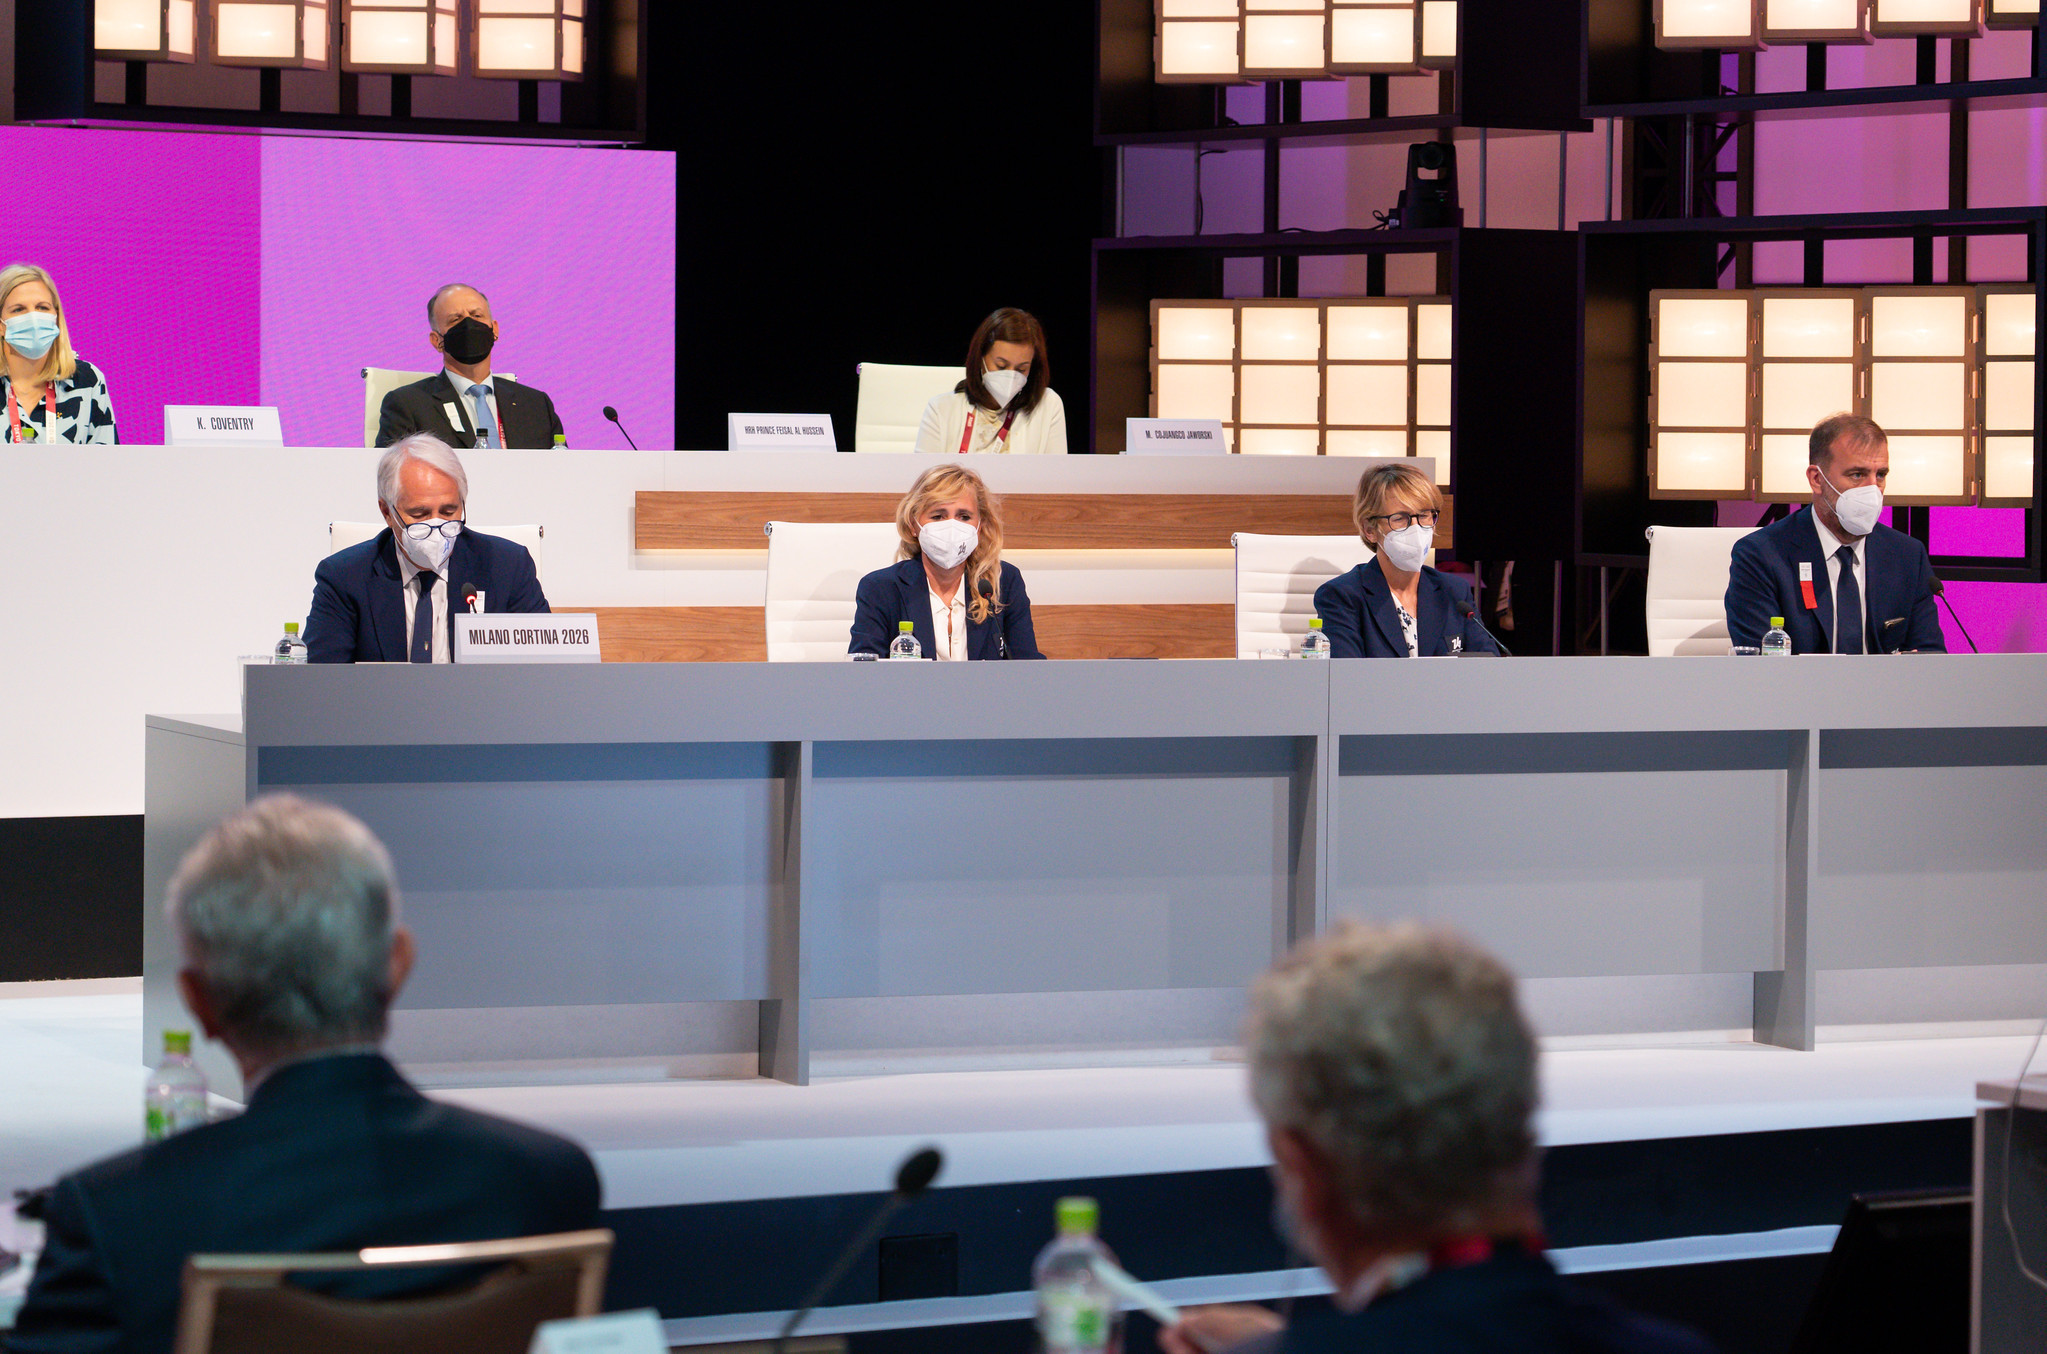 Milan Cortina 2026 said the organisation is experiencing growth and highlighted engagement after its logo selection ©IOC